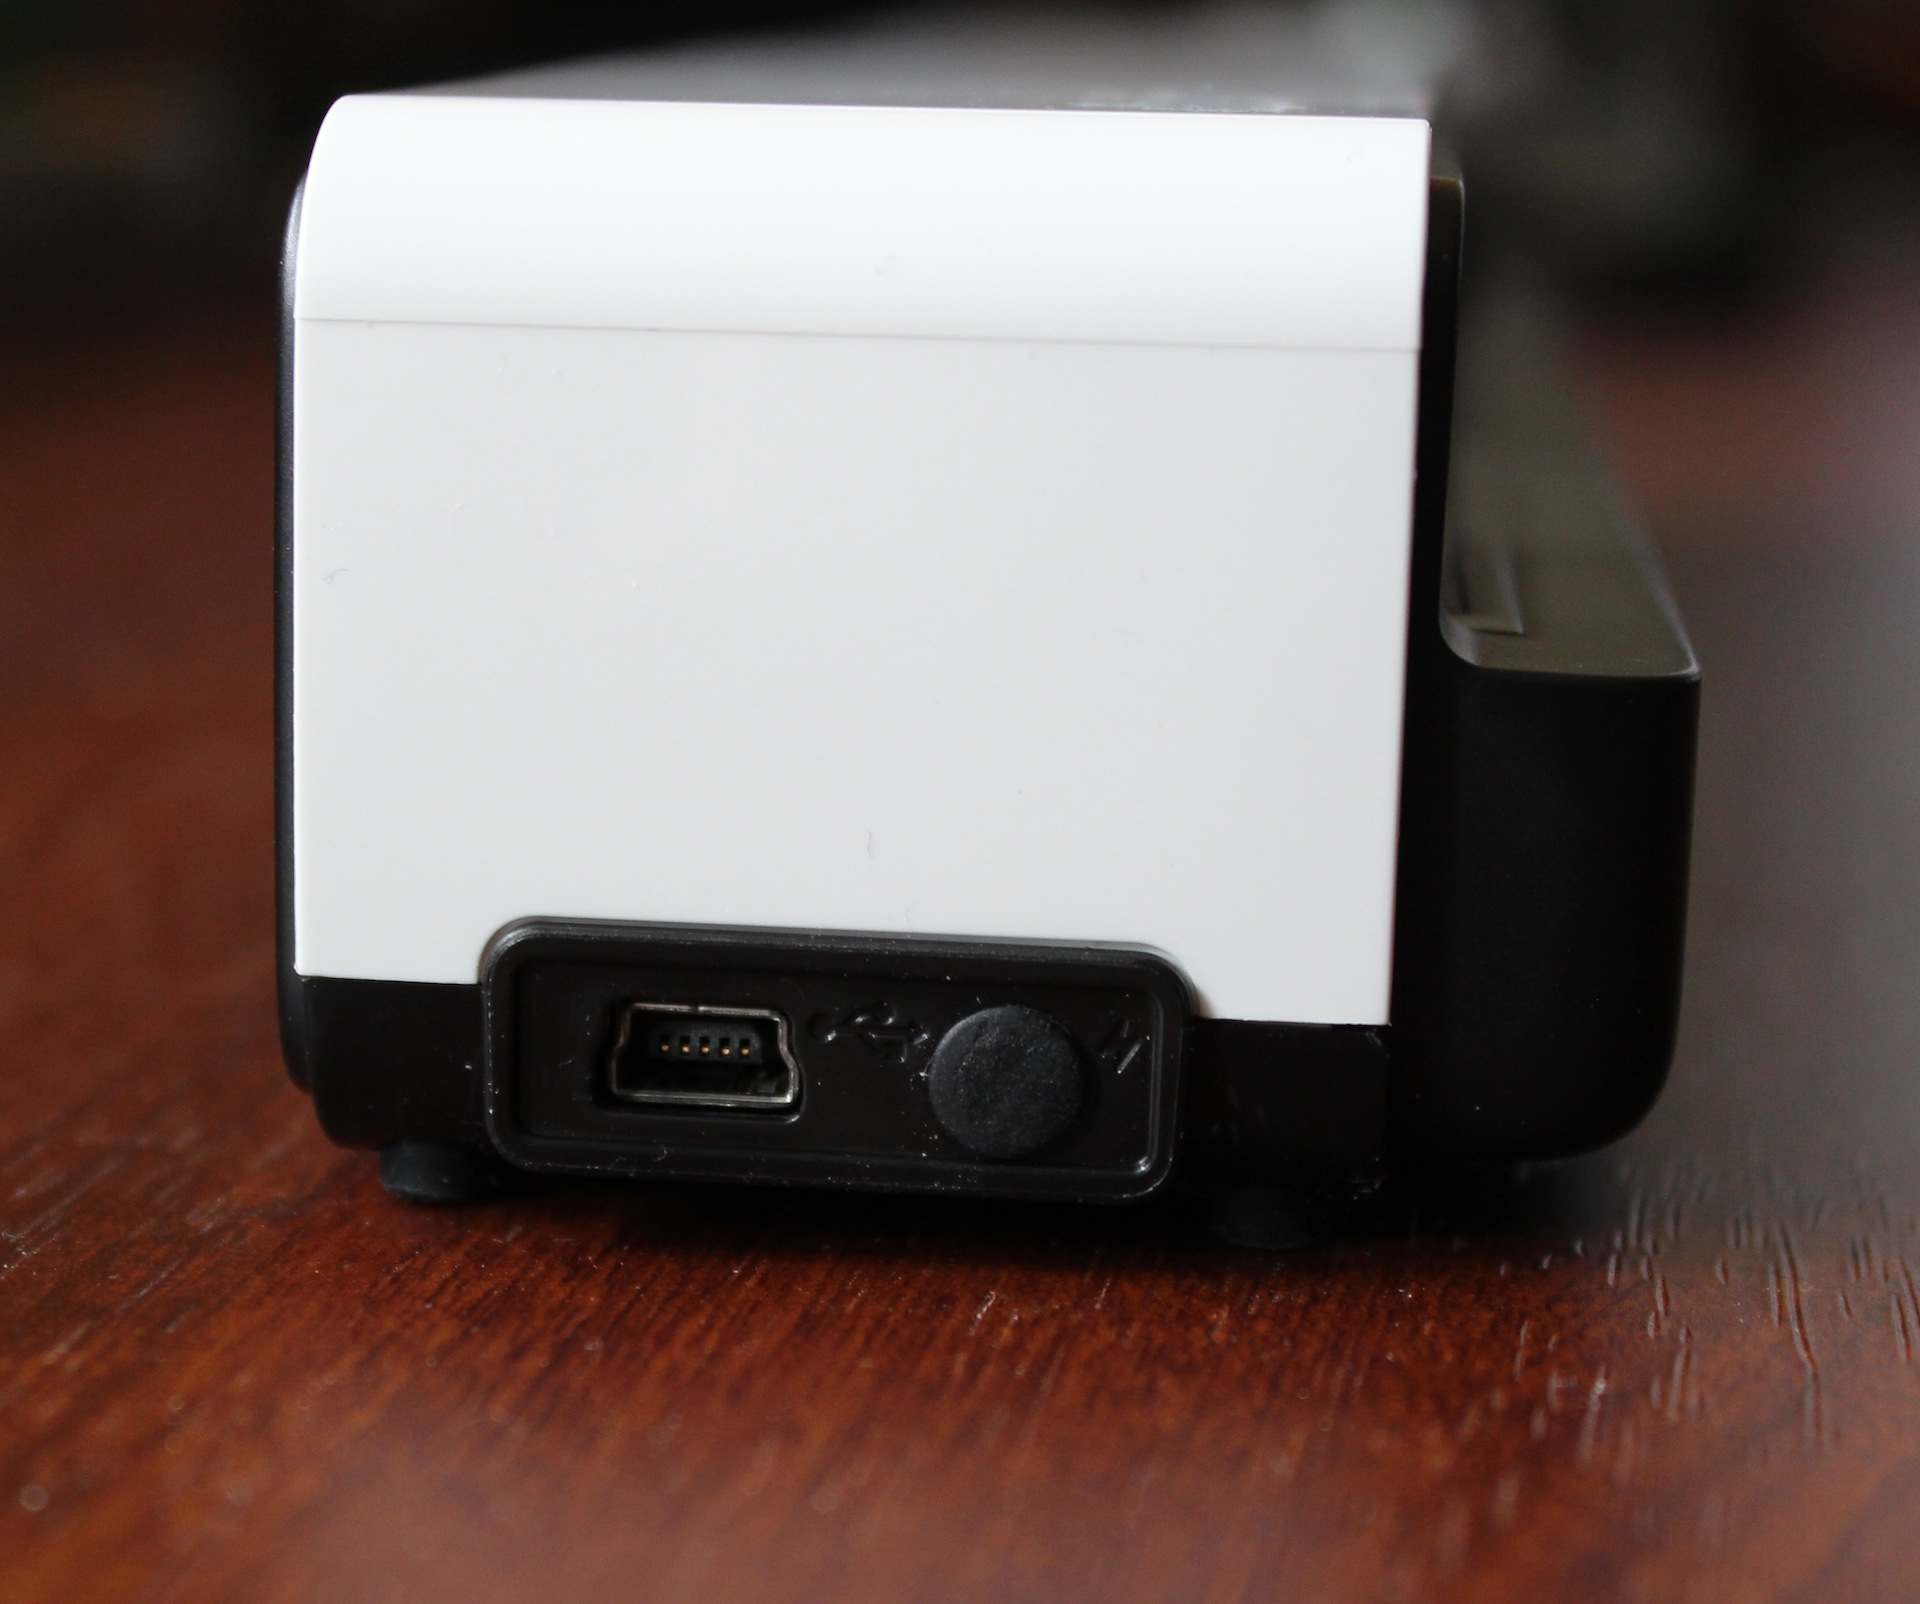 The Go keeps its mini USB port on its left side. The rubber stopper to its right protects the jack for the optional international power adapter accessory.